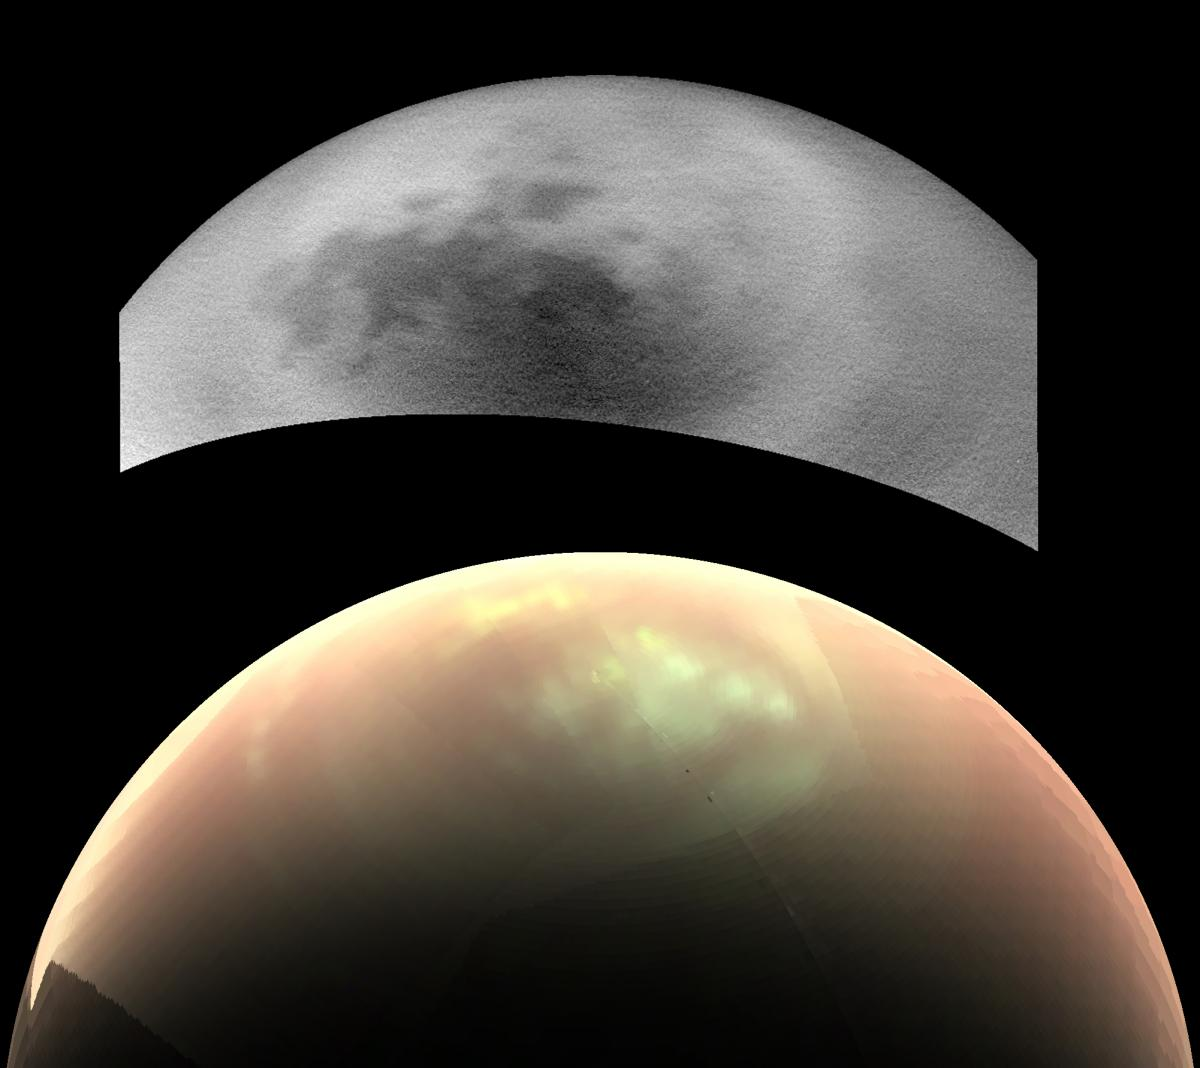 Where Are Titan's Clouds? Cassini Images Reveal Curious Conundrum